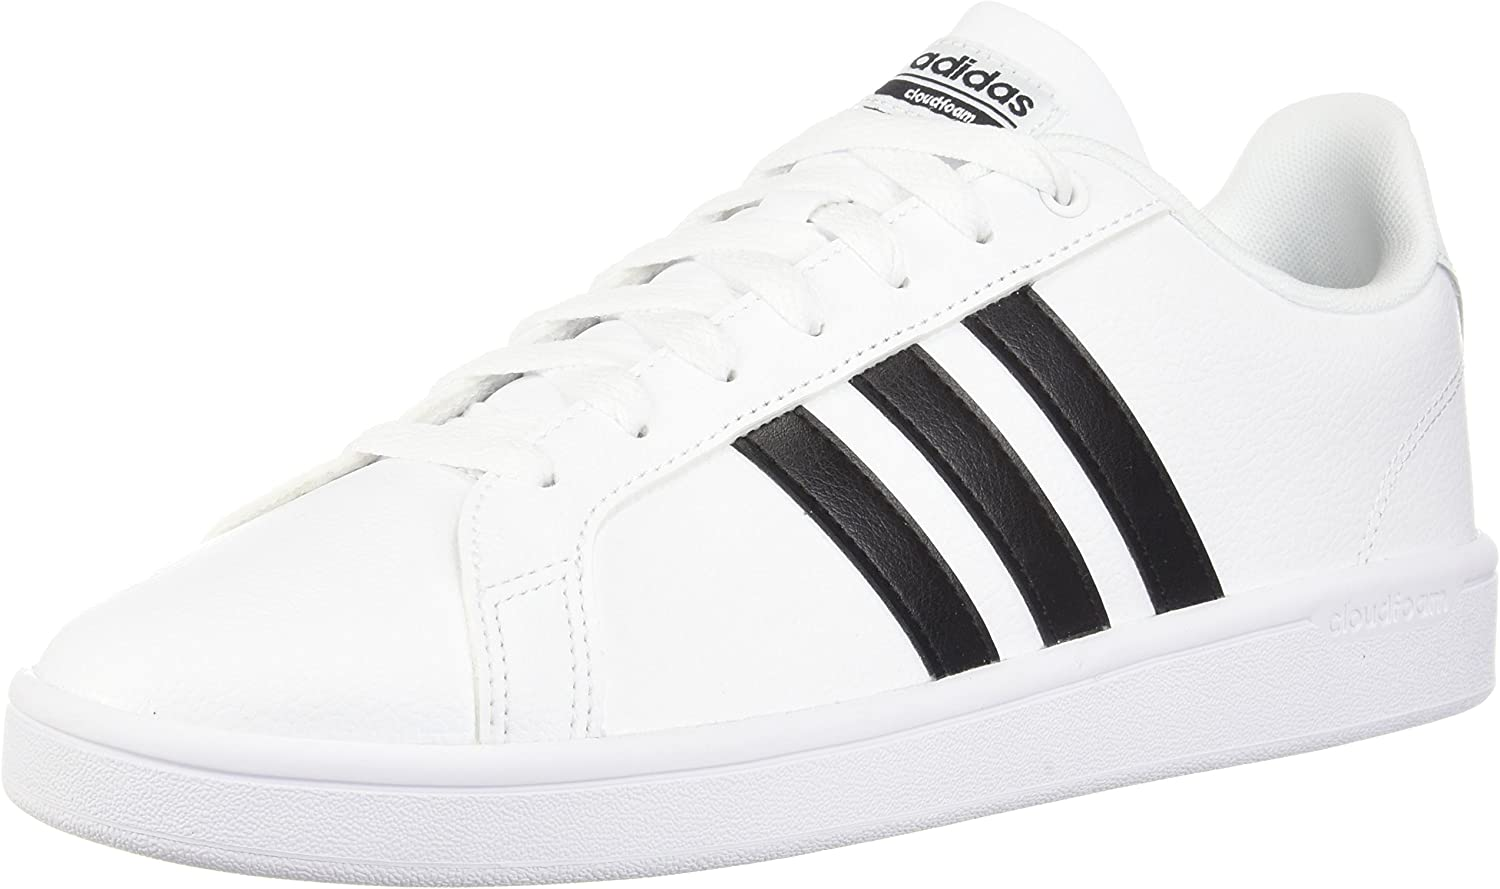 Adidas Womens Cloudfoam Advantage Sneakers